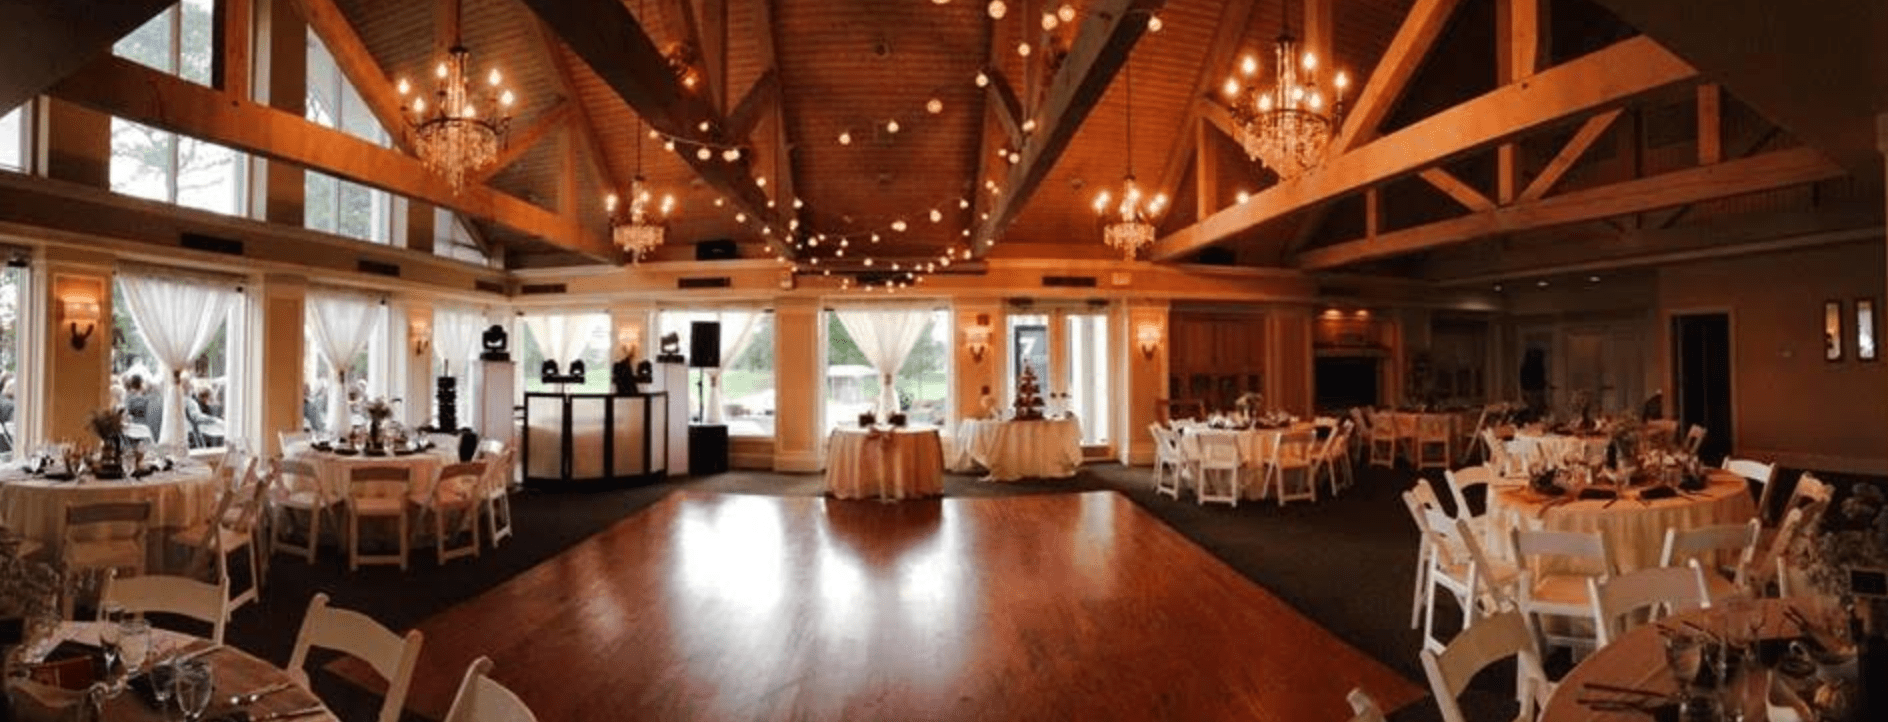 Affordable Wedding Venues in NJ beautiful